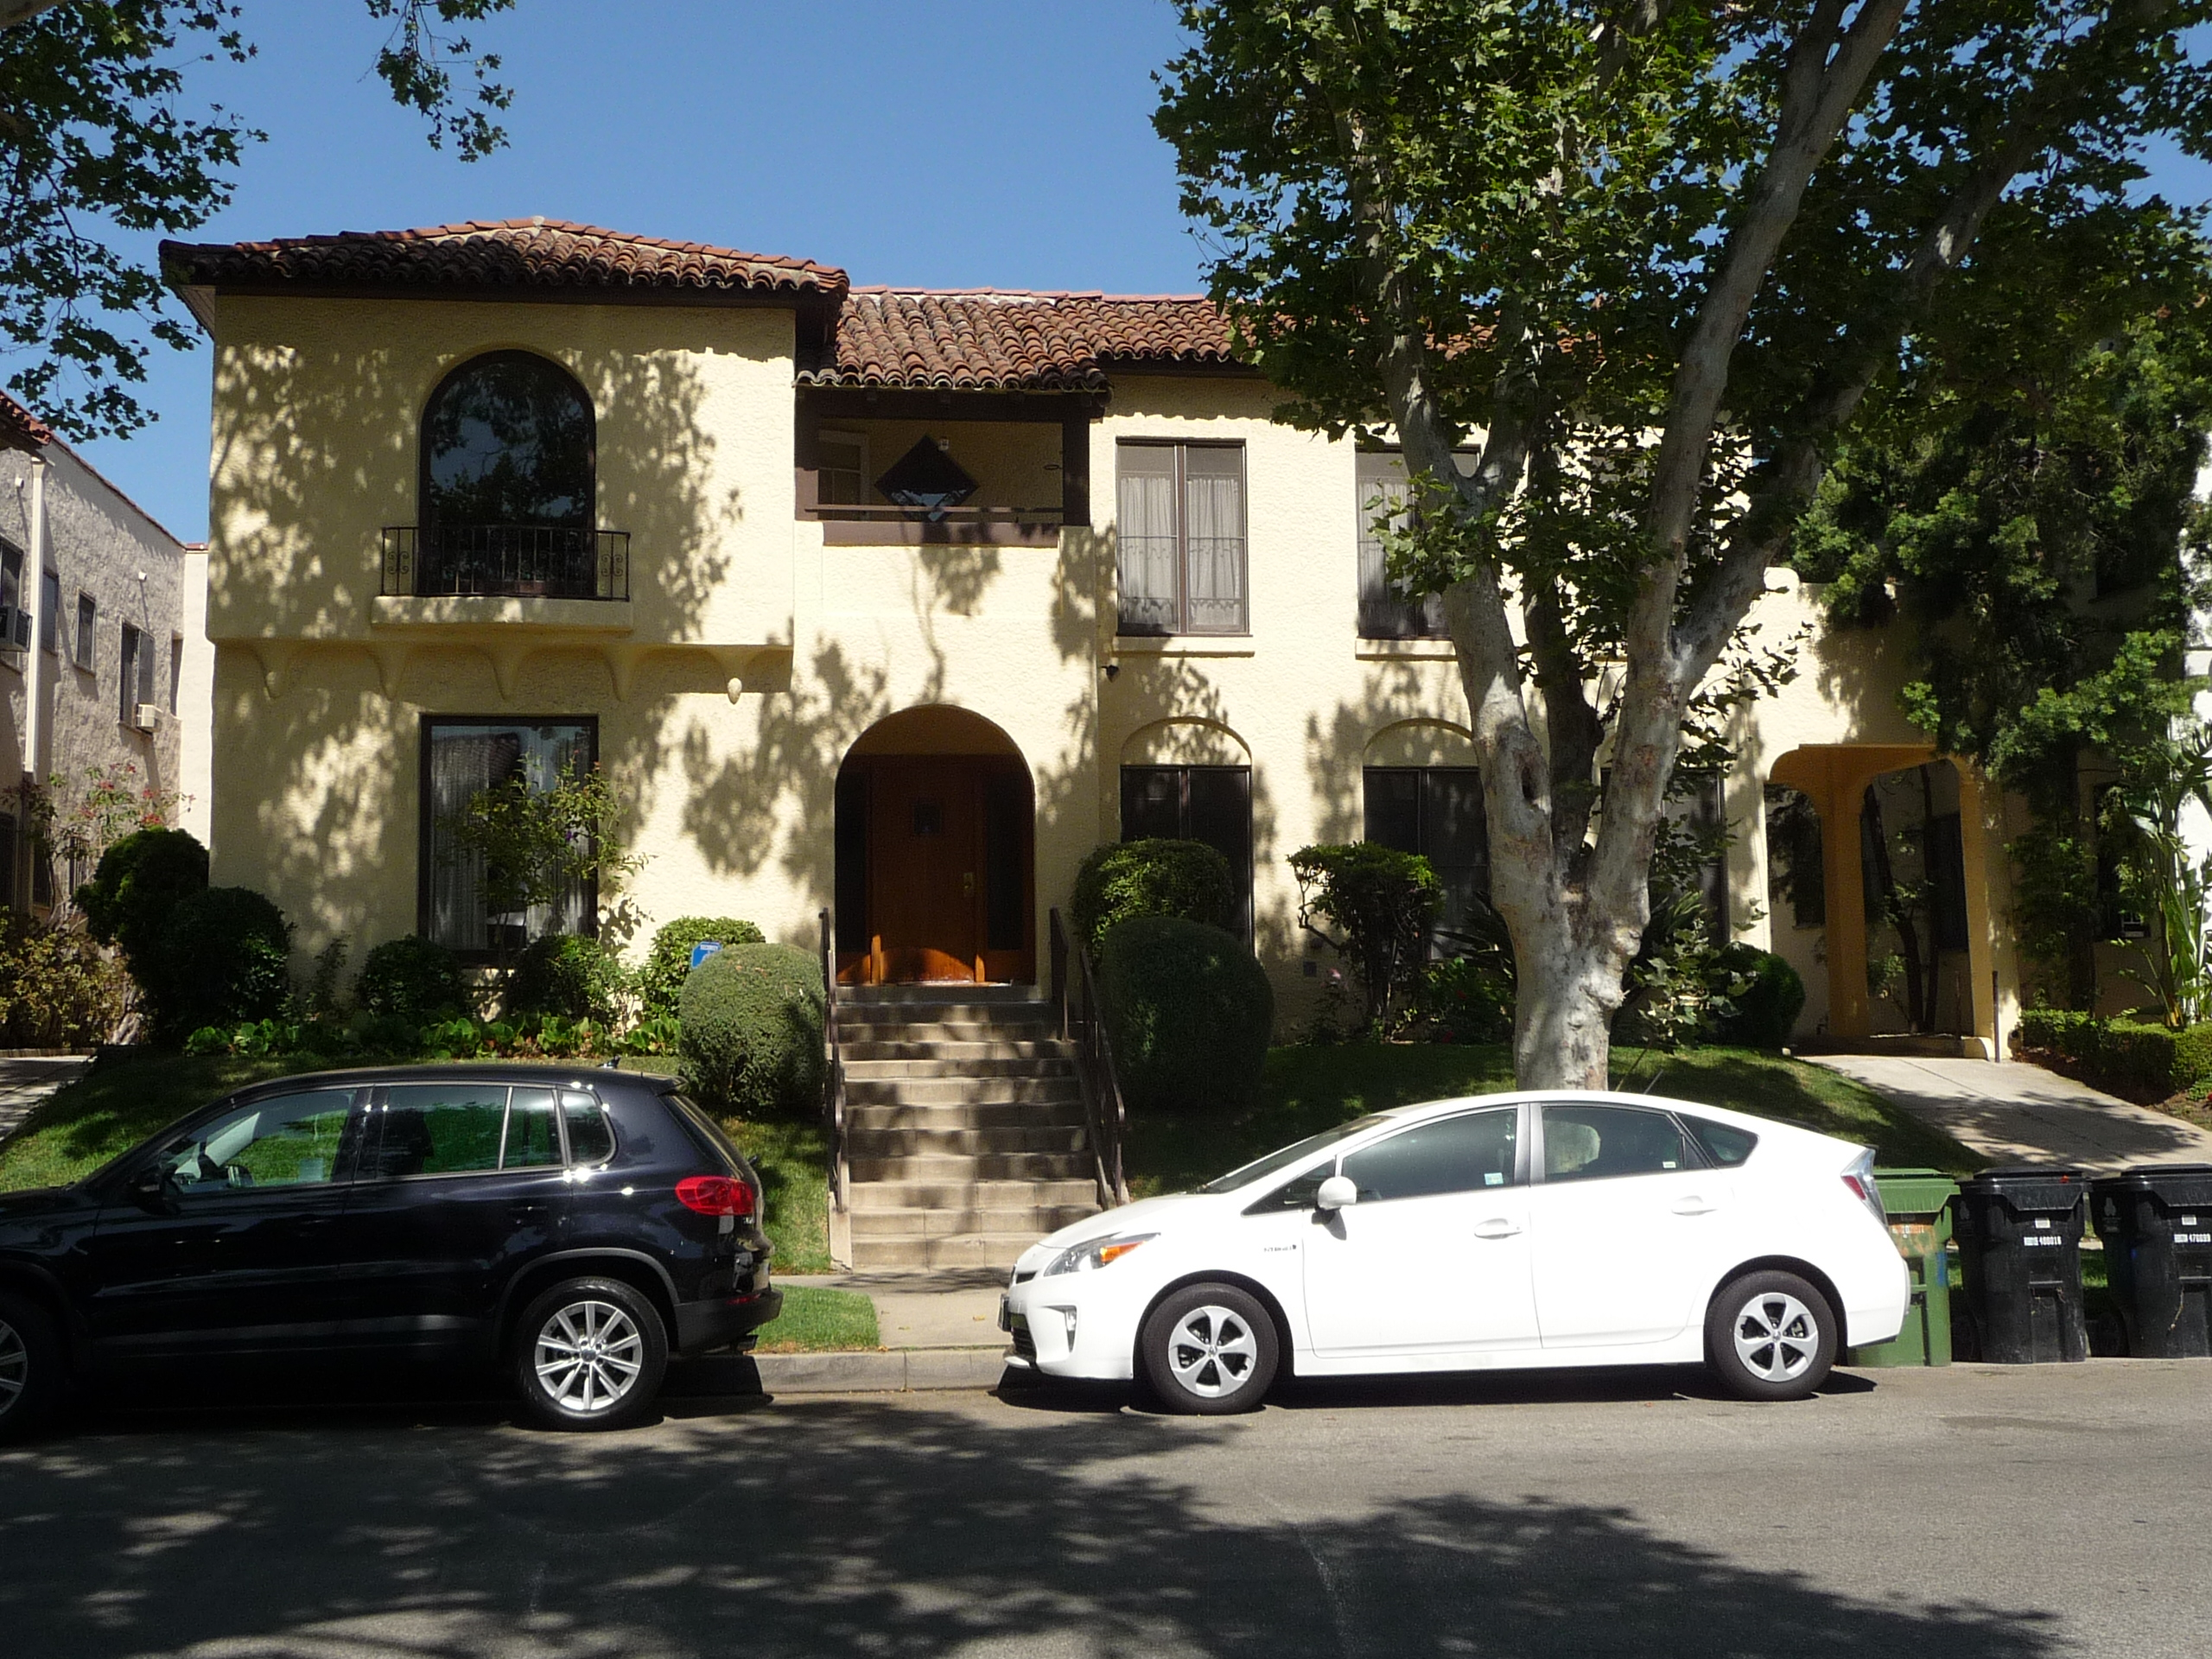 124 N SYCAMORE AVE - PHOTO